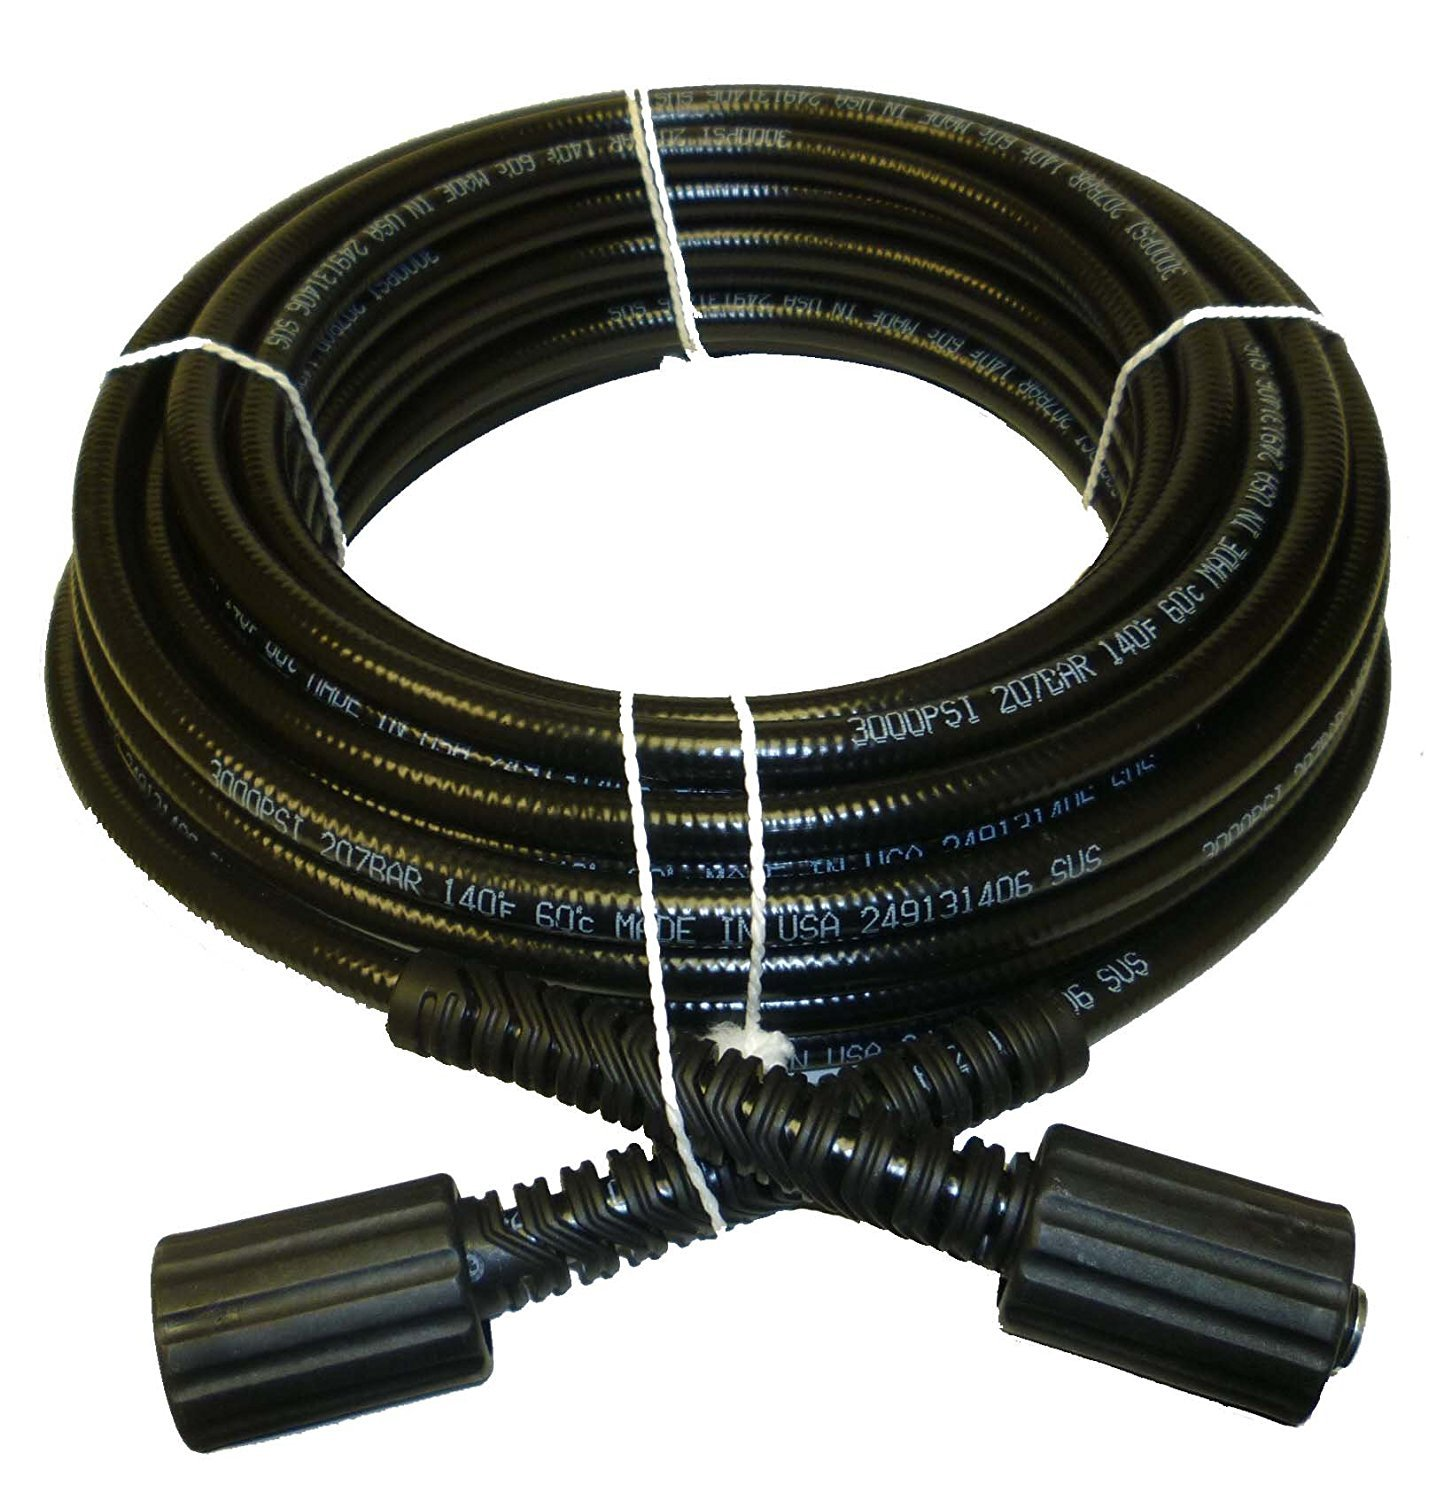 1/4 IN. x 50 FT. Pressure Washer Hose Replacement for B & S, Craftsman, Generac & Karcher''. The manufacturer is ''Propulse'' and the brand is ''Propulse